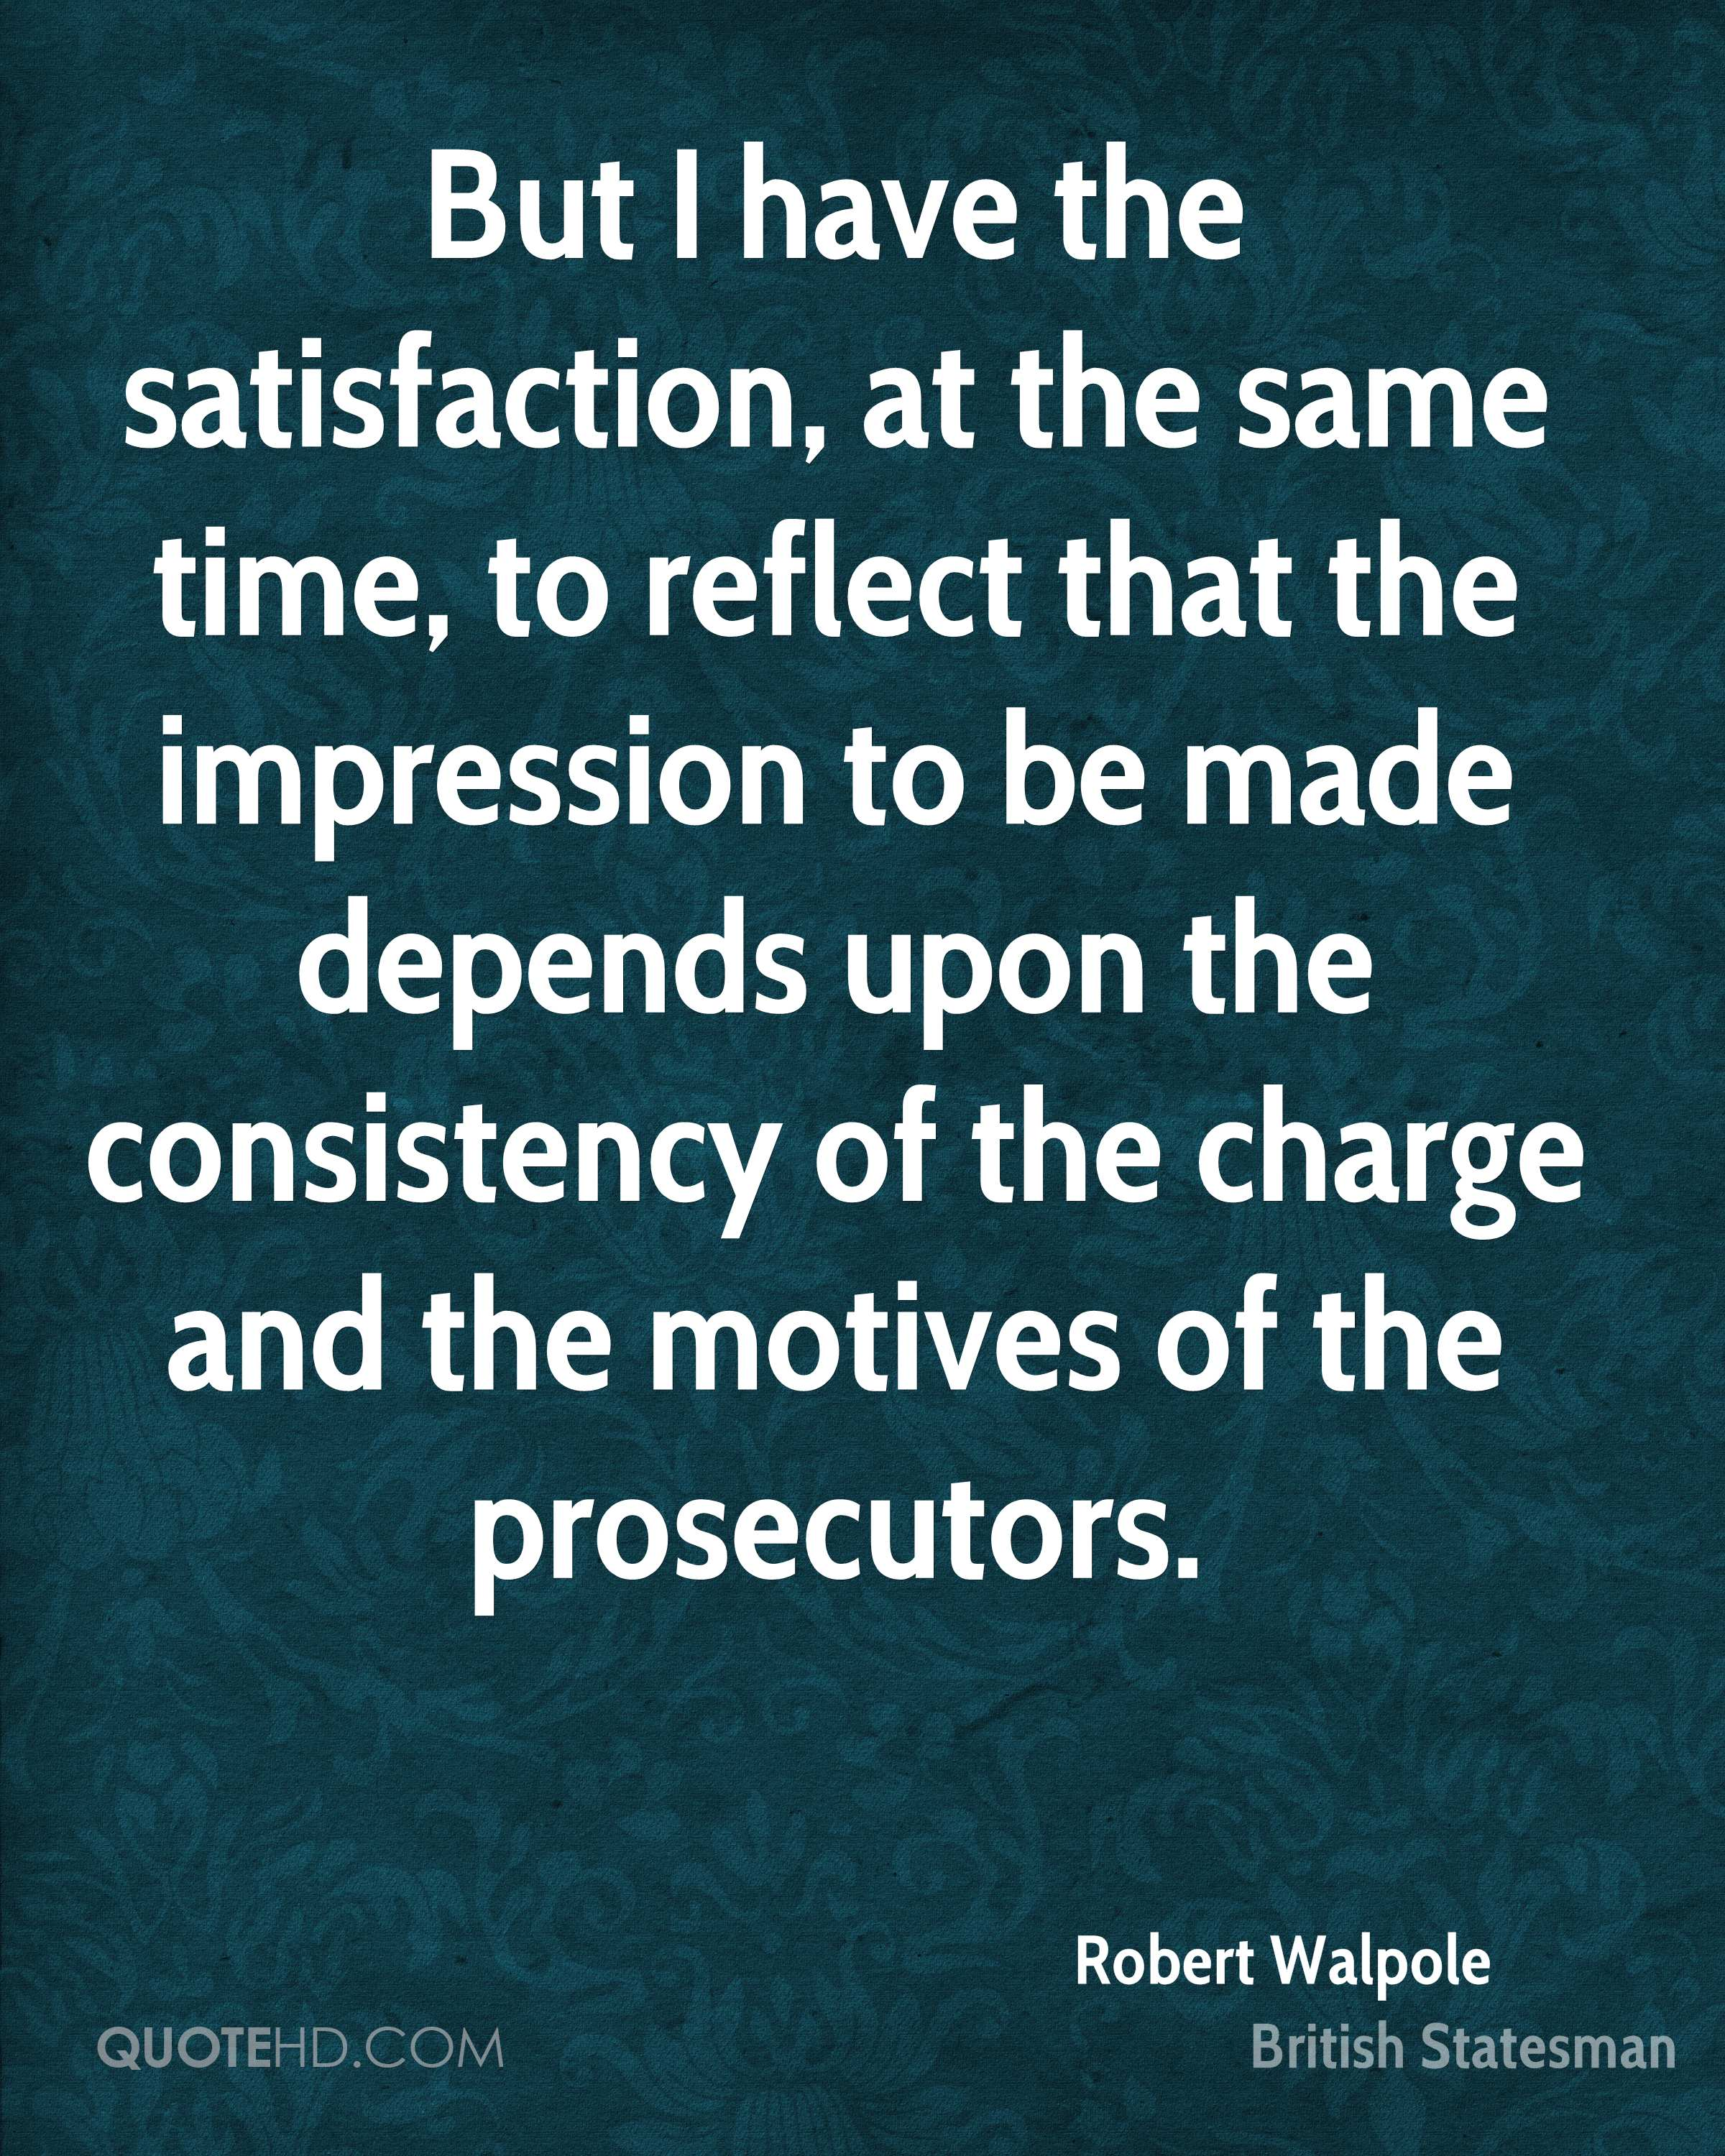 But I have the satisfaction, at the same time, to reflect that the impression to be made depends upon the consistency of the charge and the motives of the prosecutors.